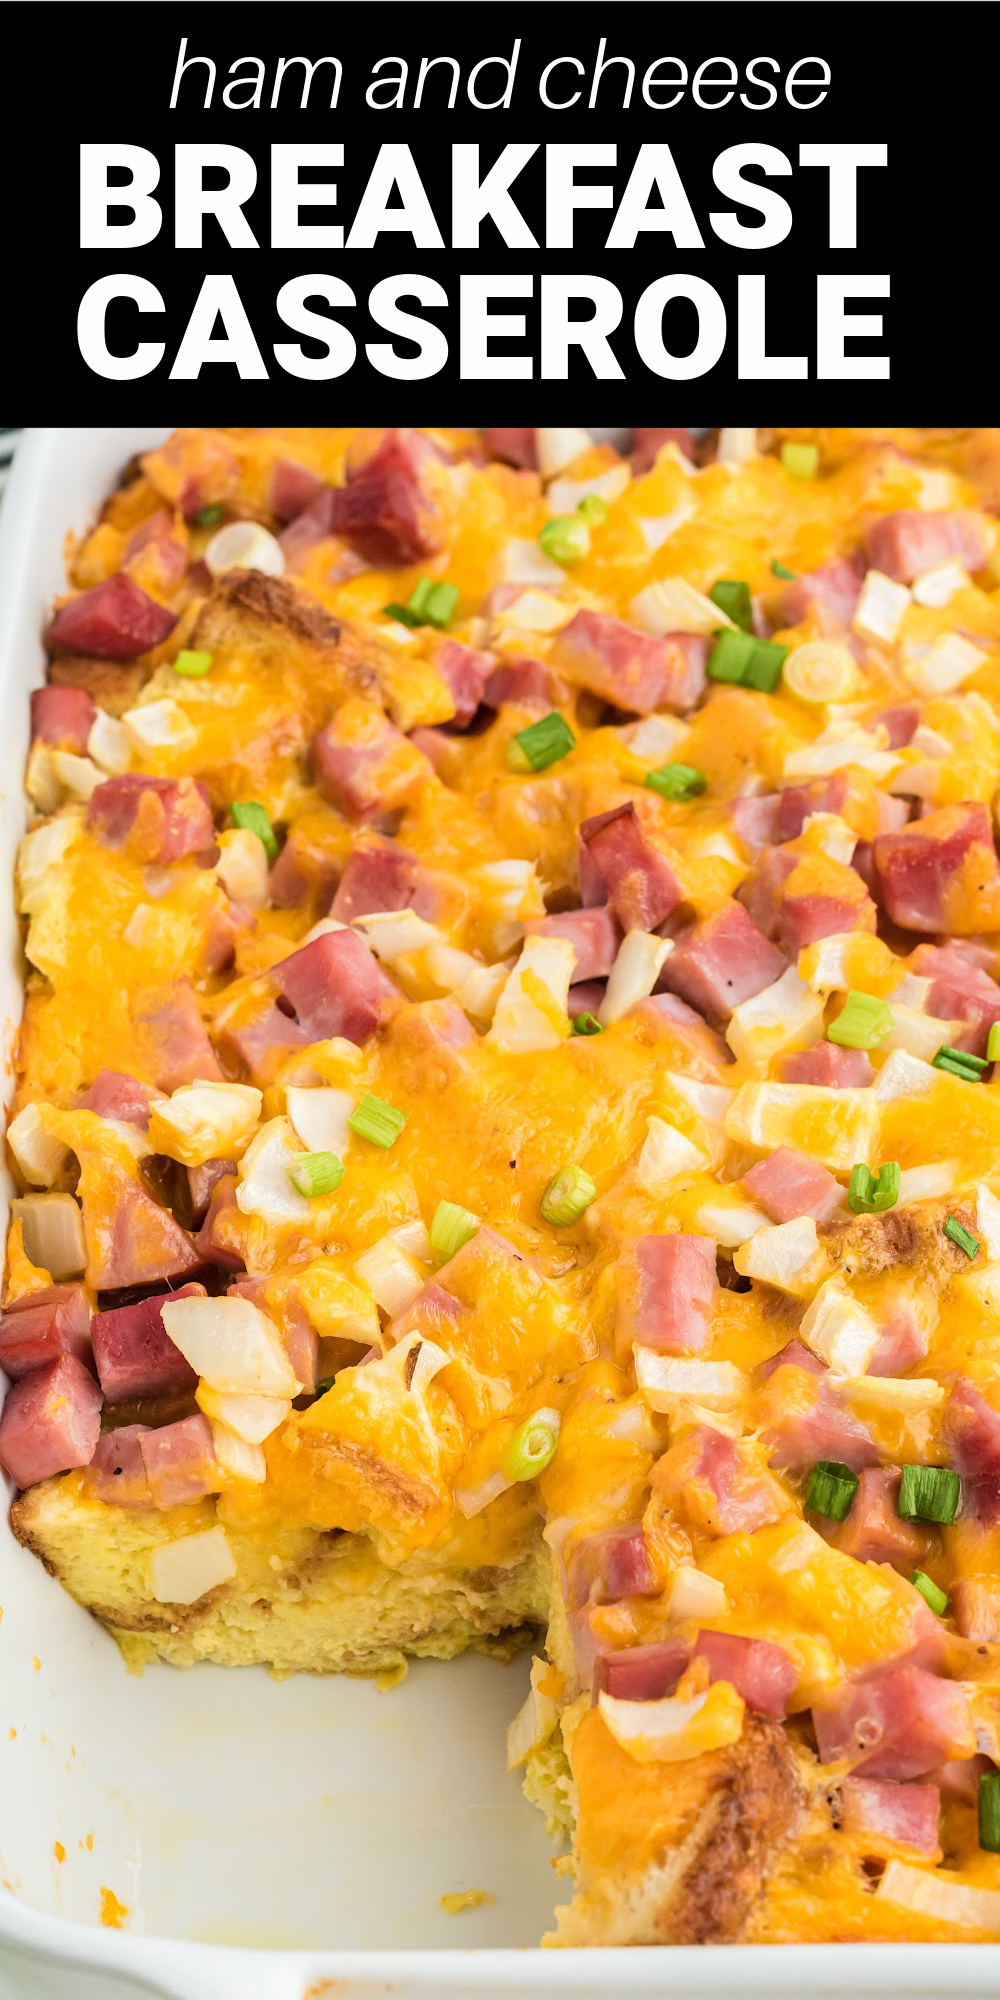 This Ham and Cheese Breakfast Casserole is a comforting flavor-packed breakfast casserole for the entire family to enjoy! Starting with a base of soft white bread, delicious ham and melted cheese are suspended in a creamy egg filling and baked until golden brown.